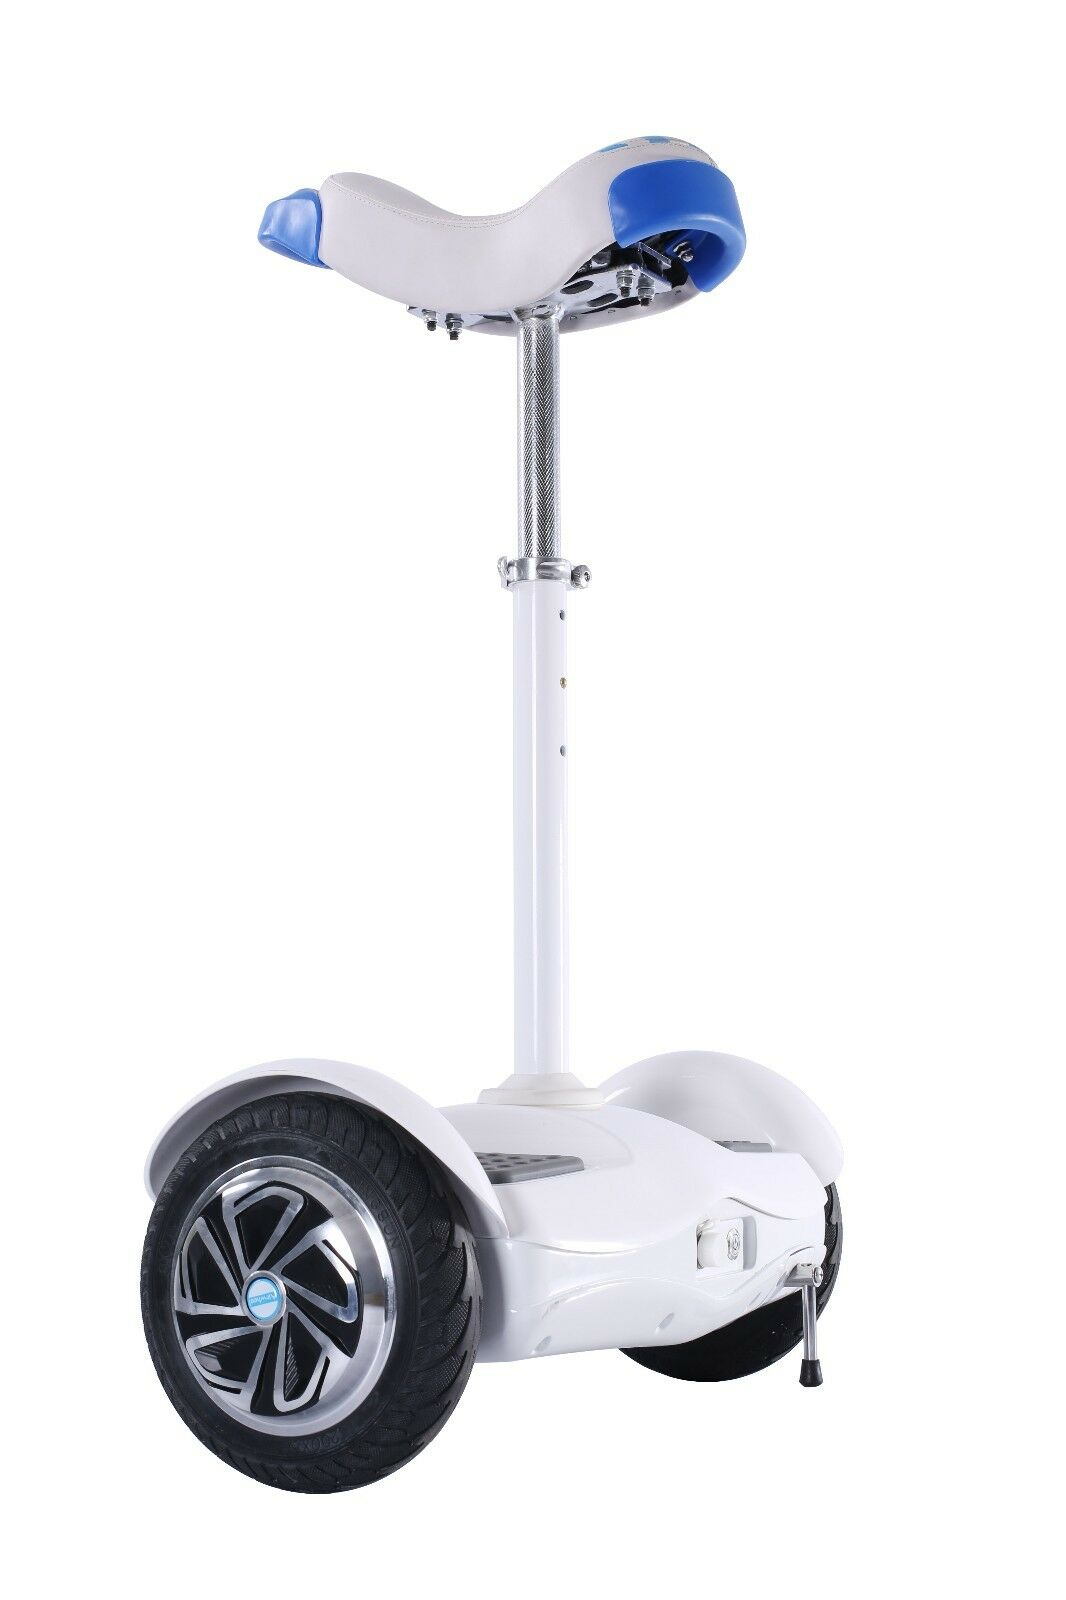 Open Box Airwheel S6 Motorized Moped Mobile Seat Electric Scooter 260Wh